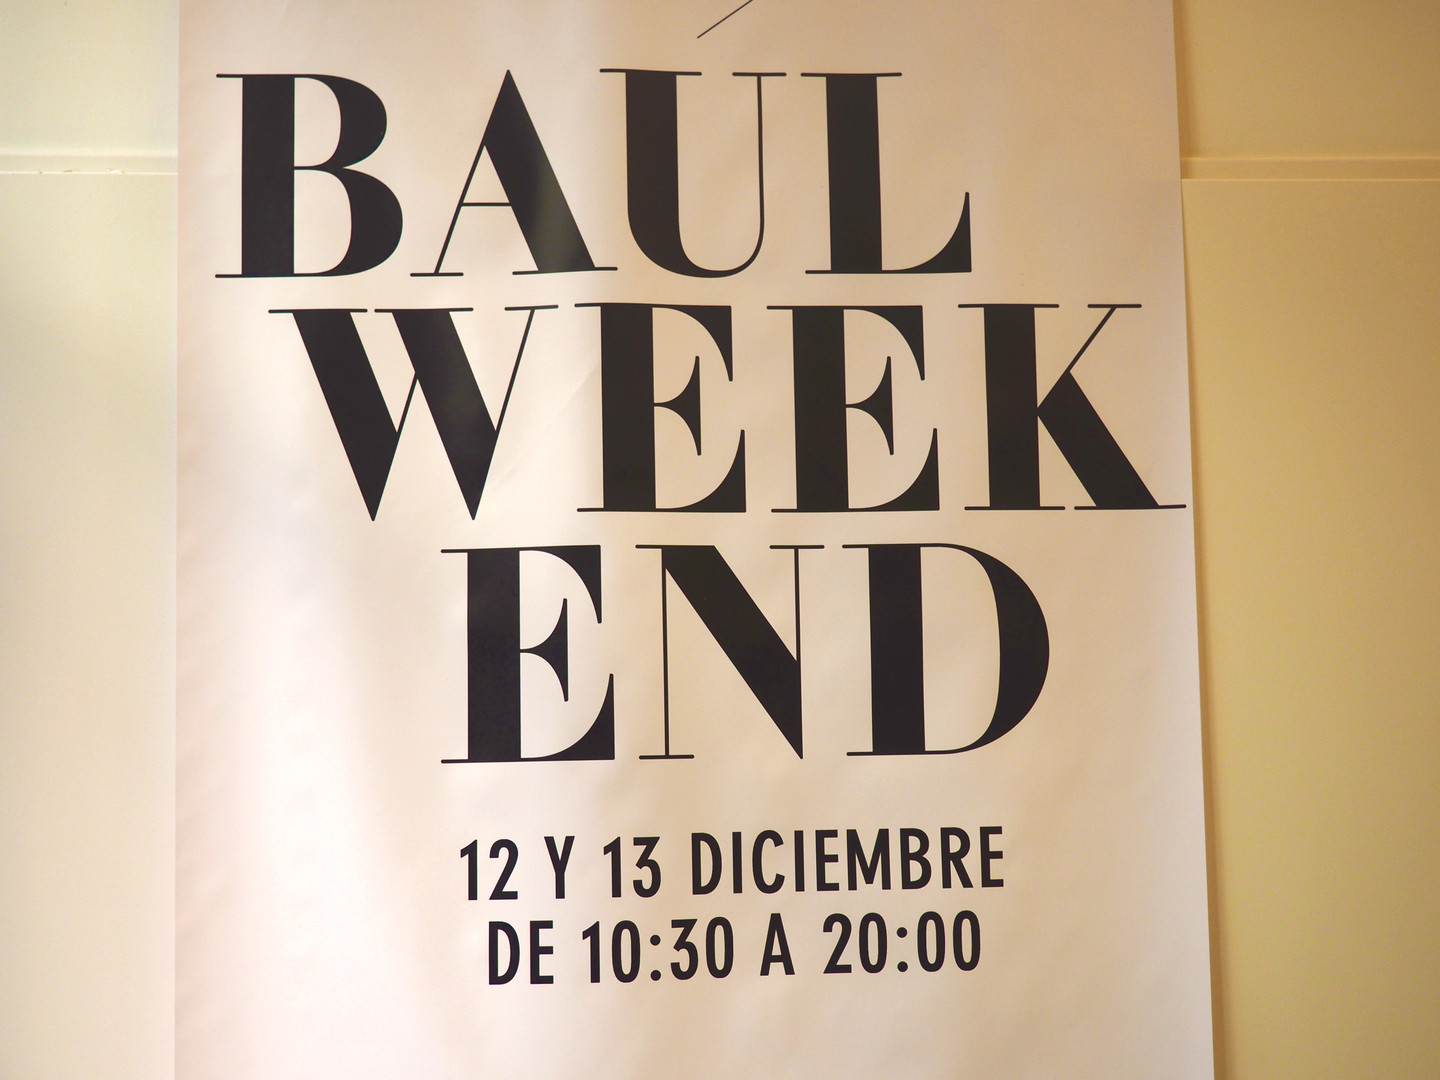 Baúl Weekend2